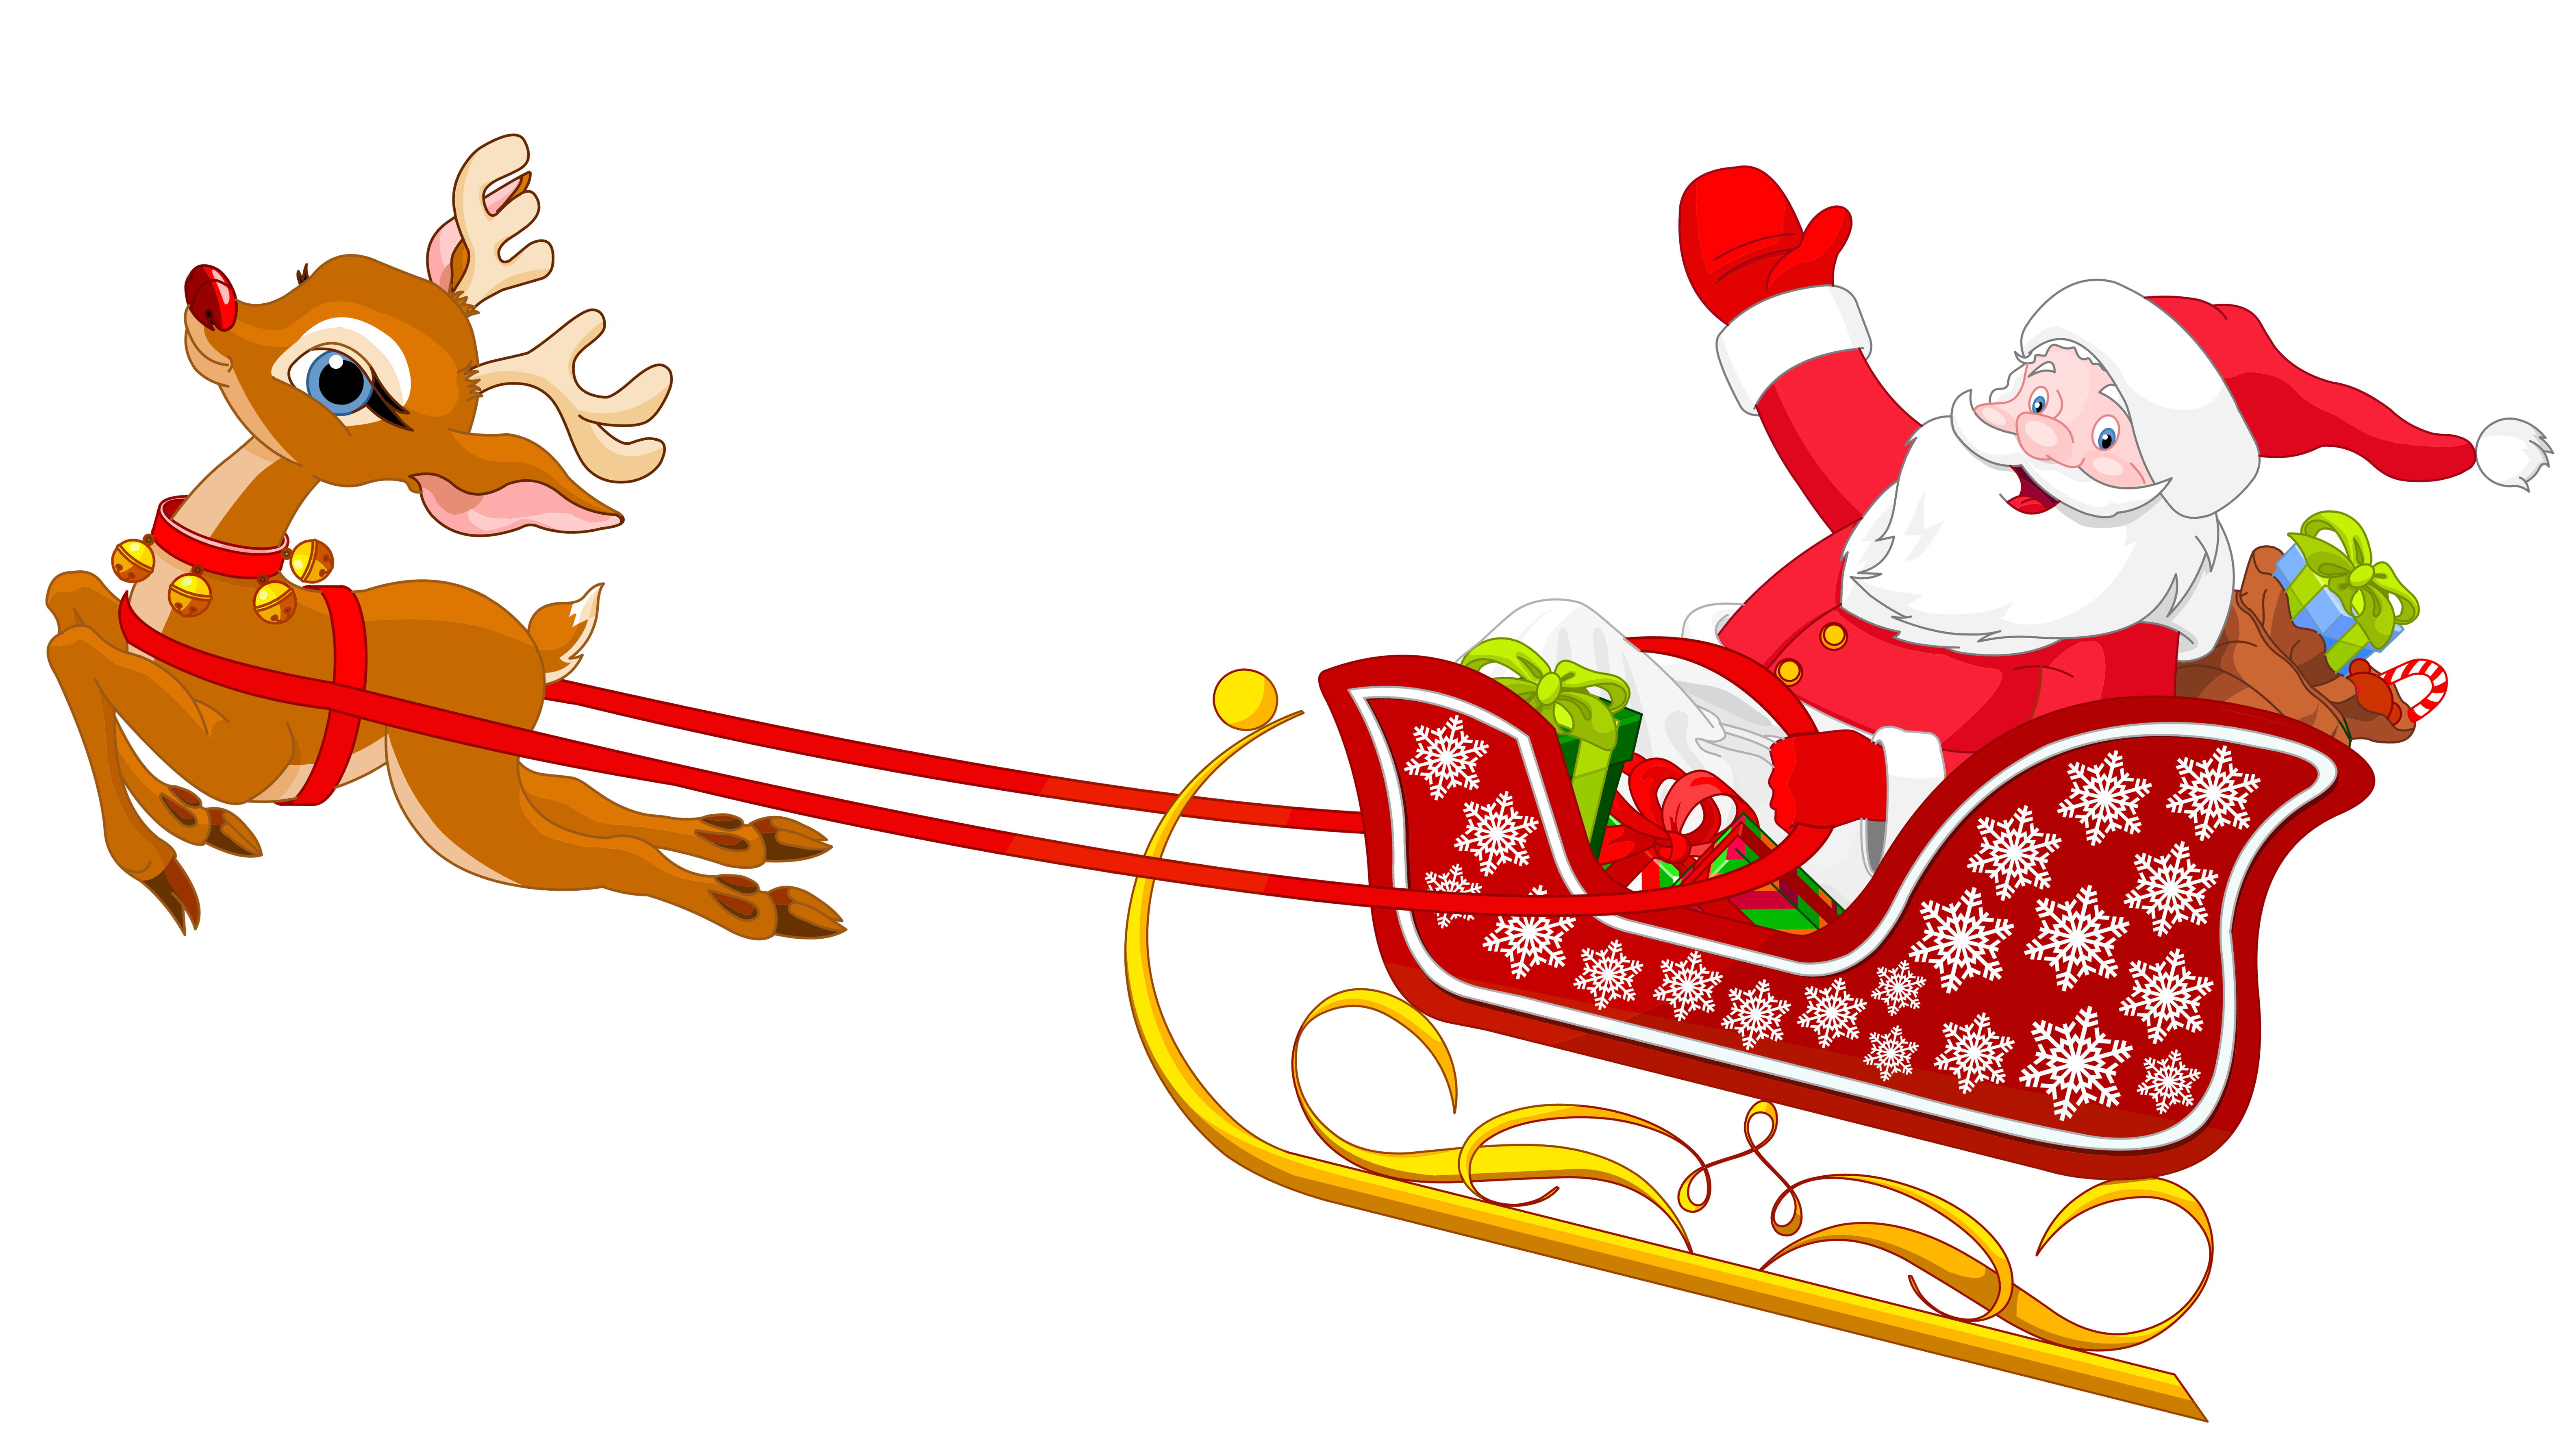 Santa claus sleigh png. Clipart at getdrawings com